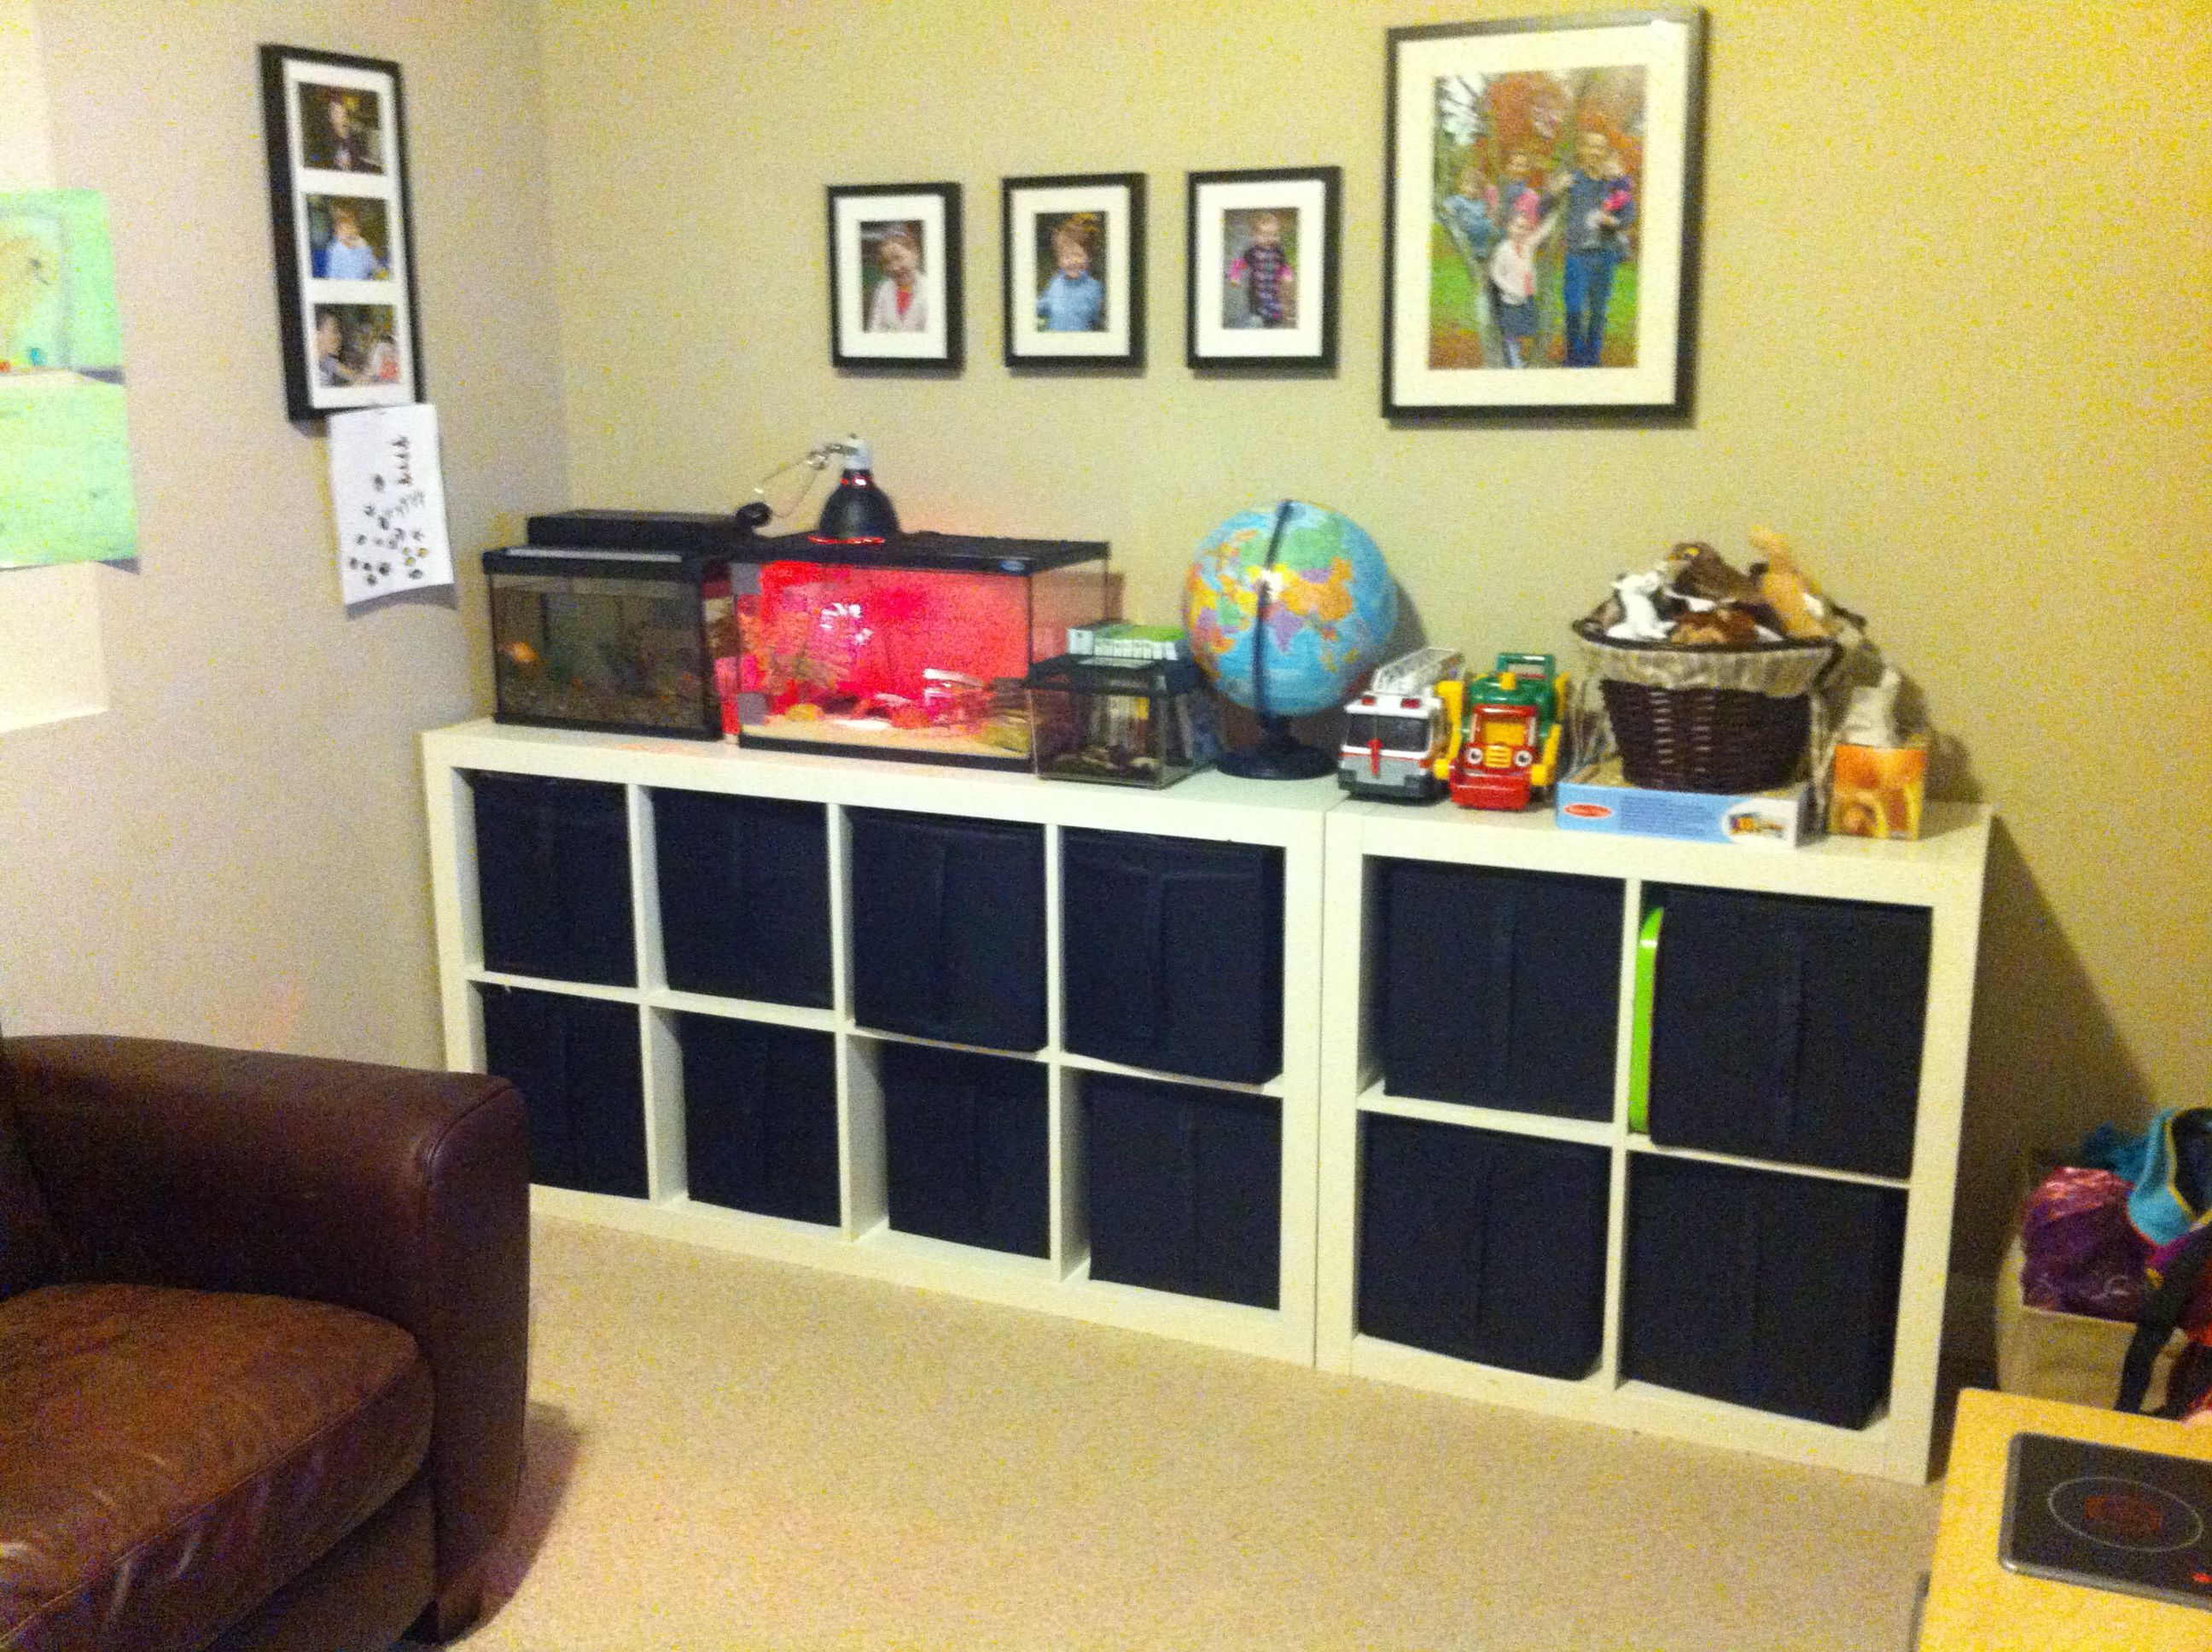 toy storage ikea expedit storage unit houses toys for three kids ages 20 months to six years old. Black Bedroom Furniture Sets. Home Design Ideas